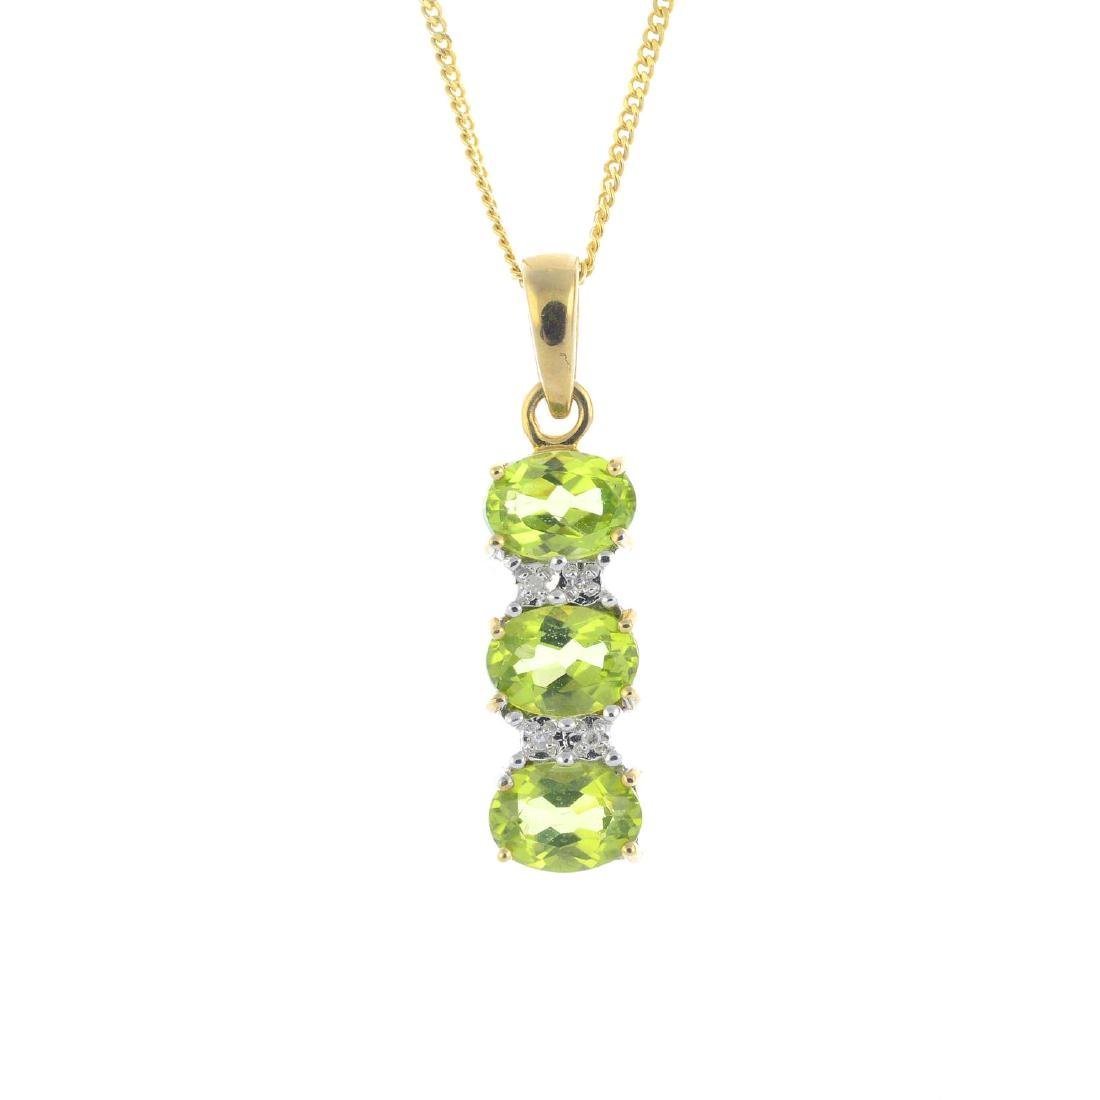 A 9ct gold diamond and peridot pendant. The oval-shape